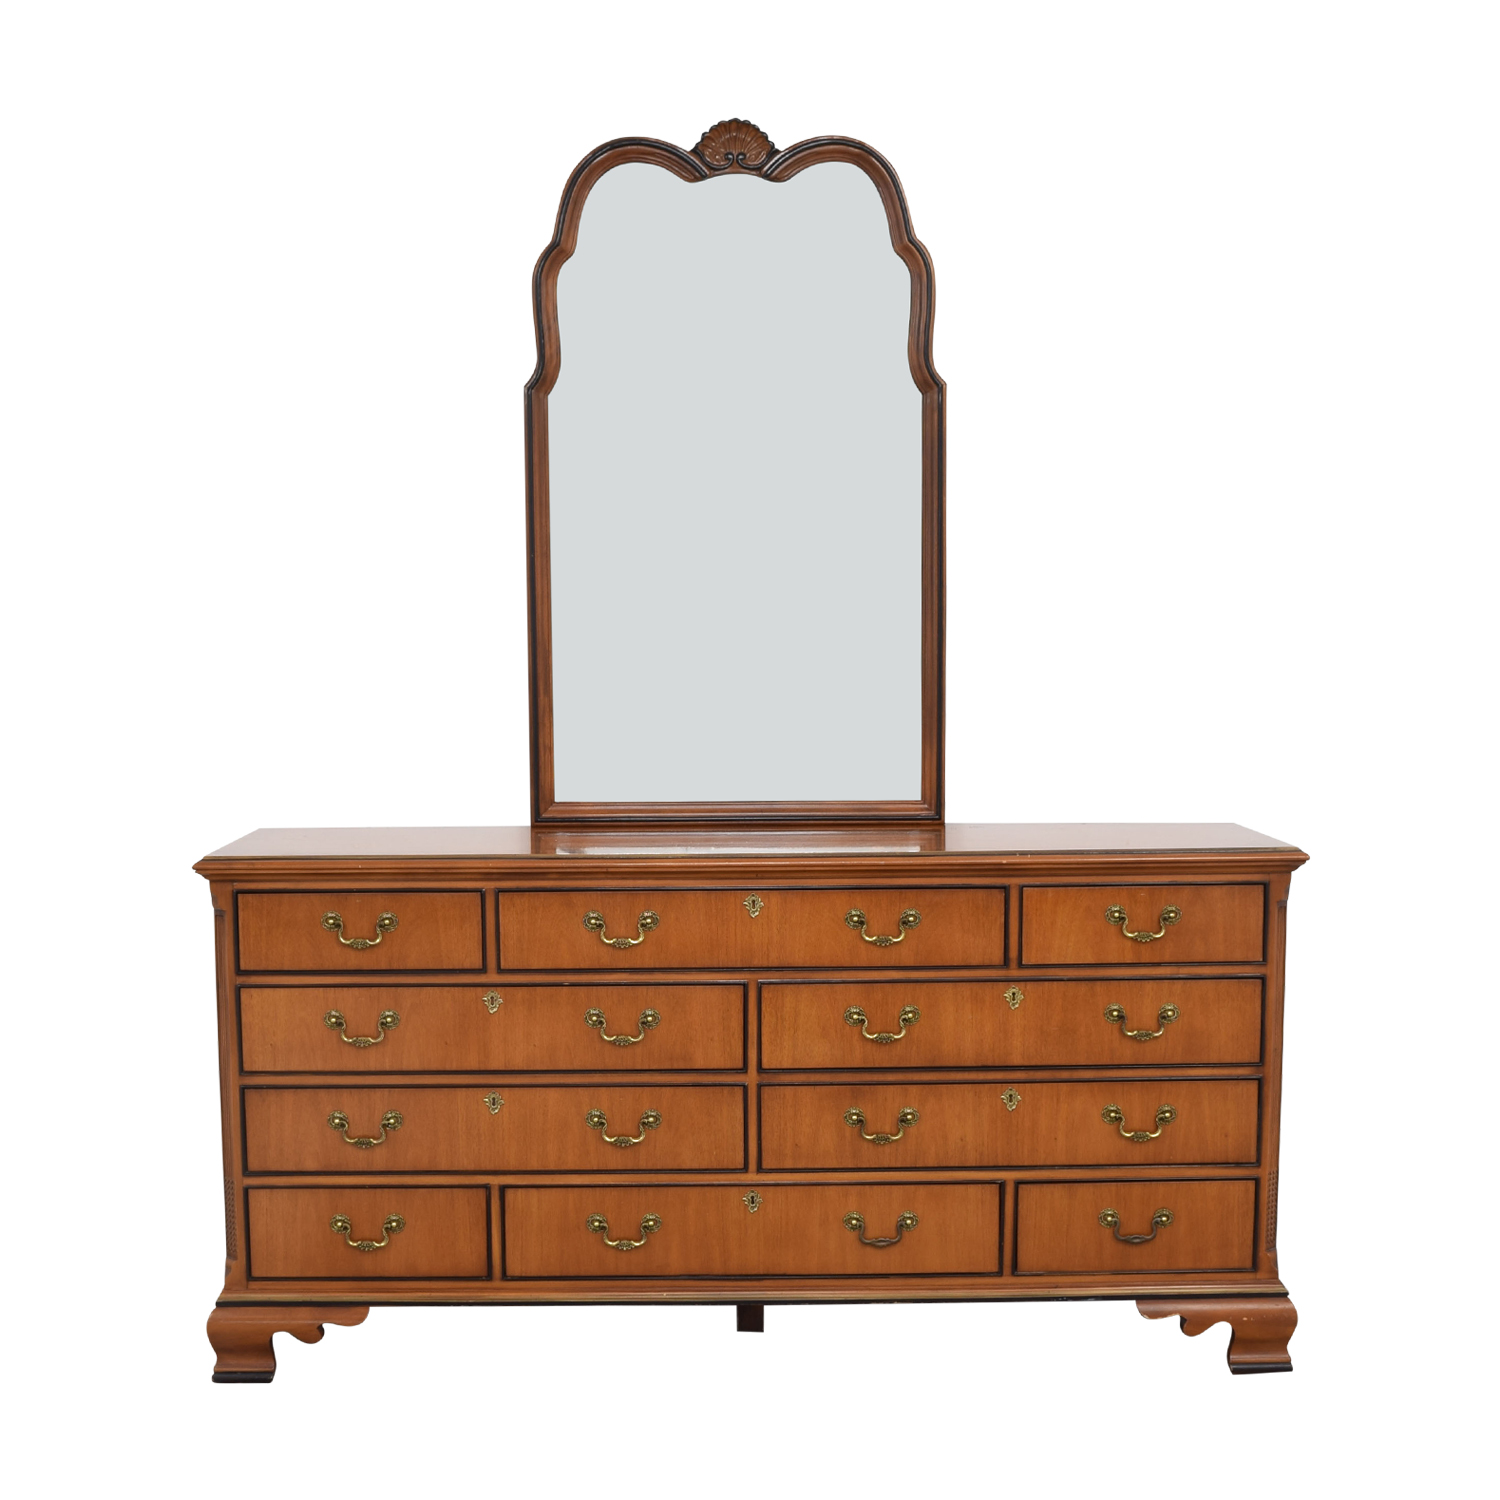 Drexel Drexel Dresser with Mirror dimensions